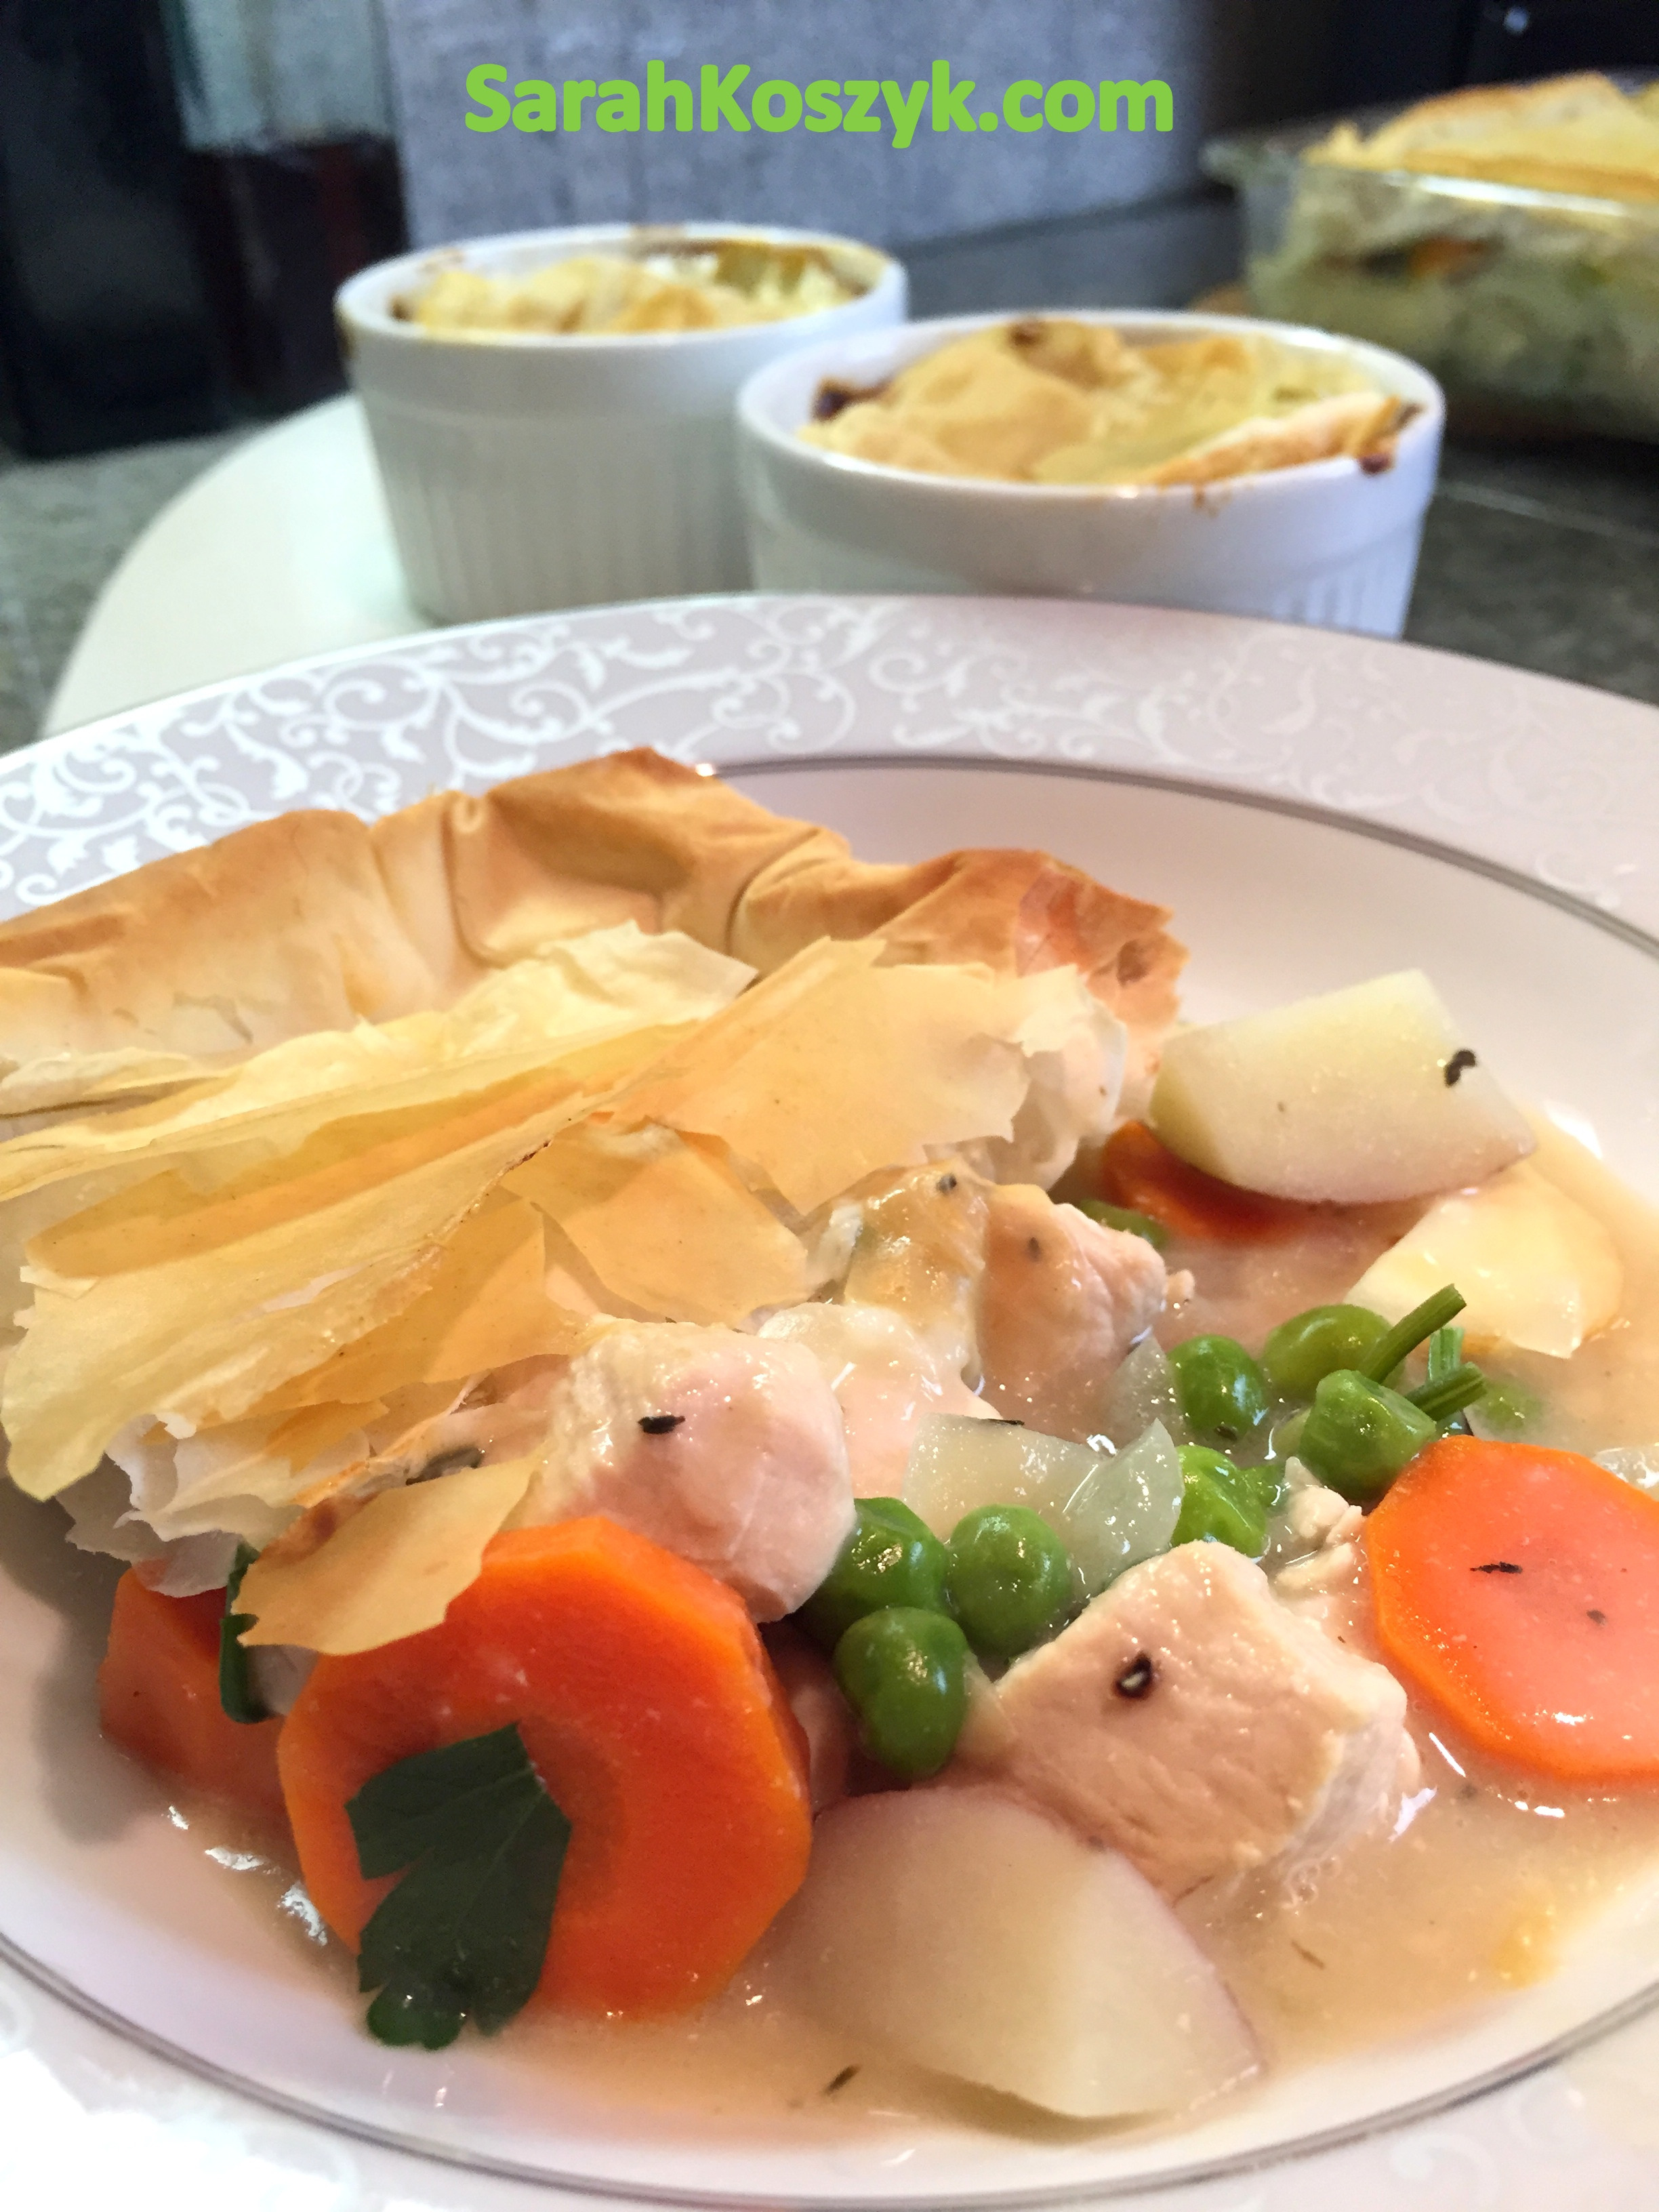 Low Fat Chicken Pot Pie  Healthy and Low Fat Chicken Pot Pie Sarah Koszyk Family